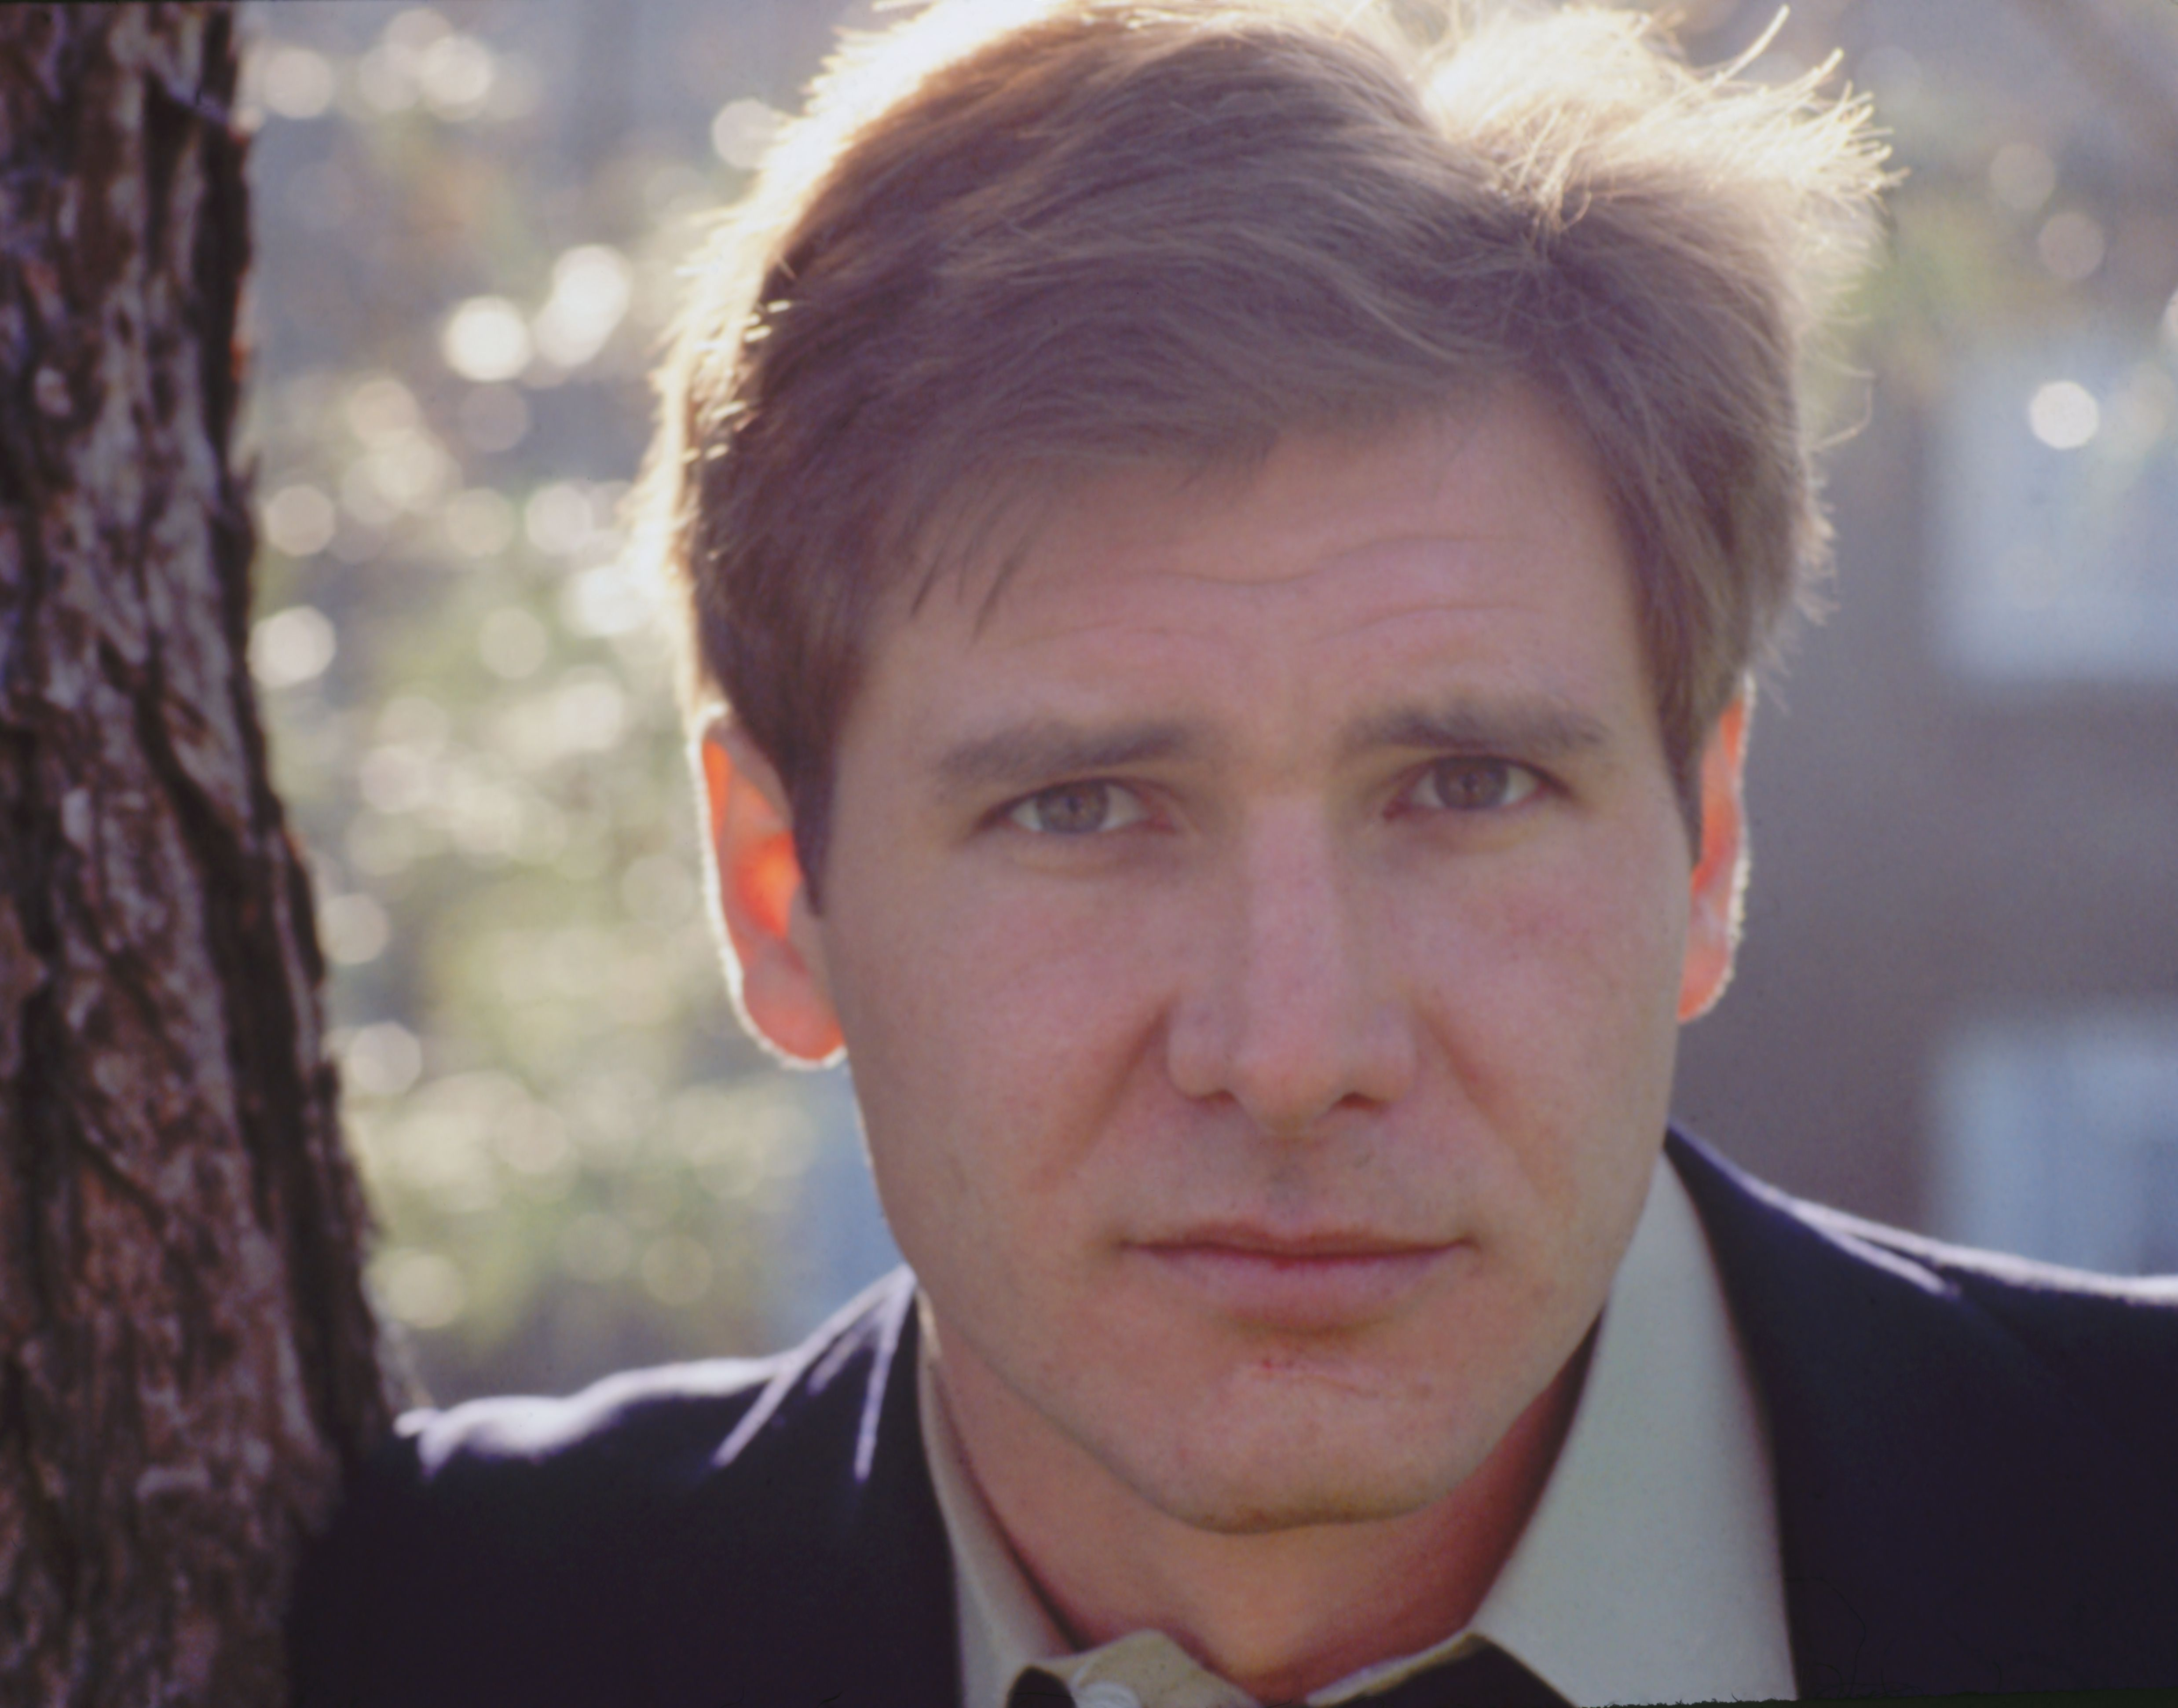 Harrison Ford at 34 Here's Ford in the '70s, starring in the TV movie Dynasty.